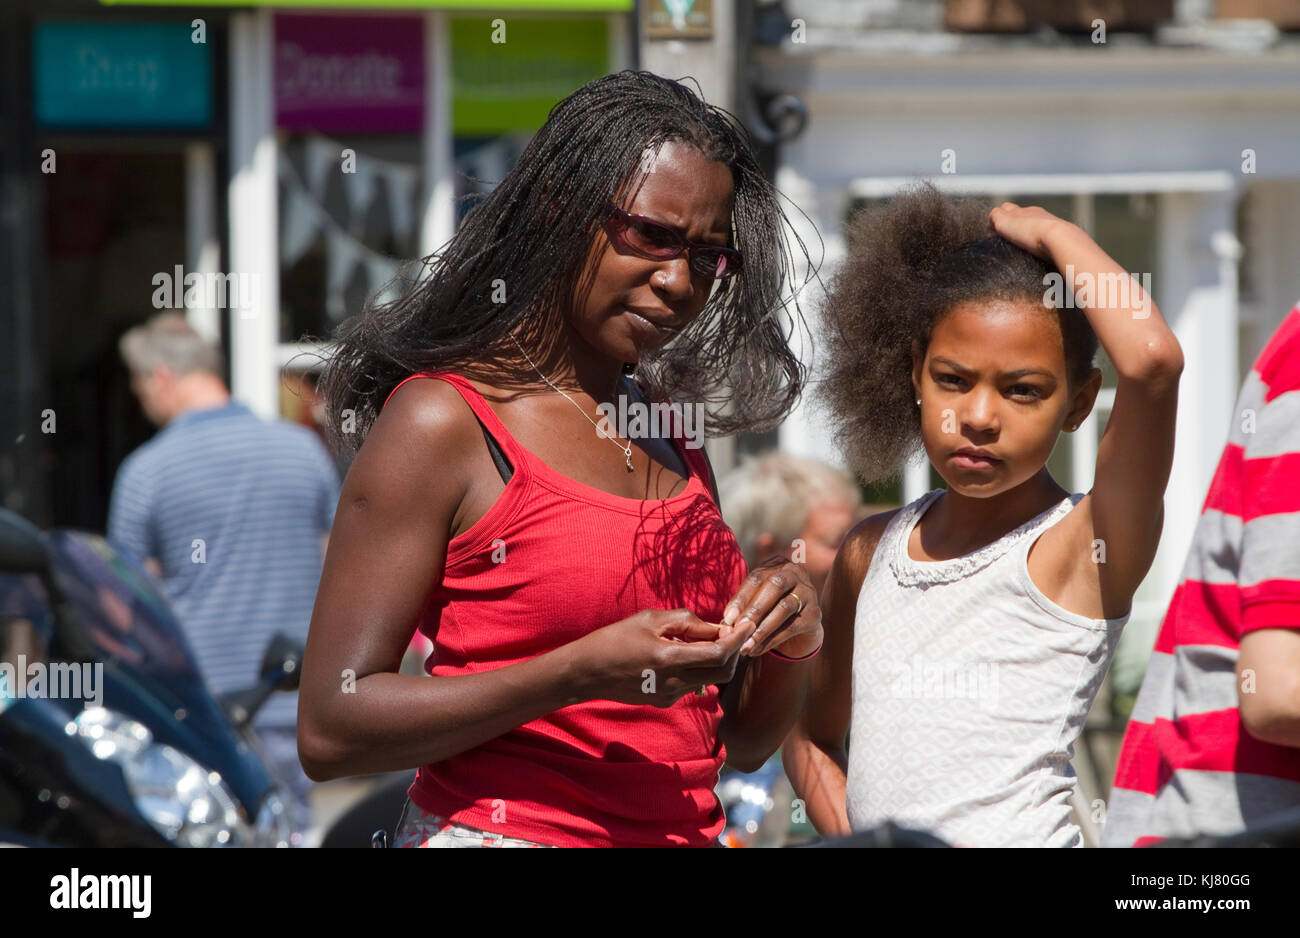 Two young Afro-Caribbean females on a sunny Suffolk day - Stock Image